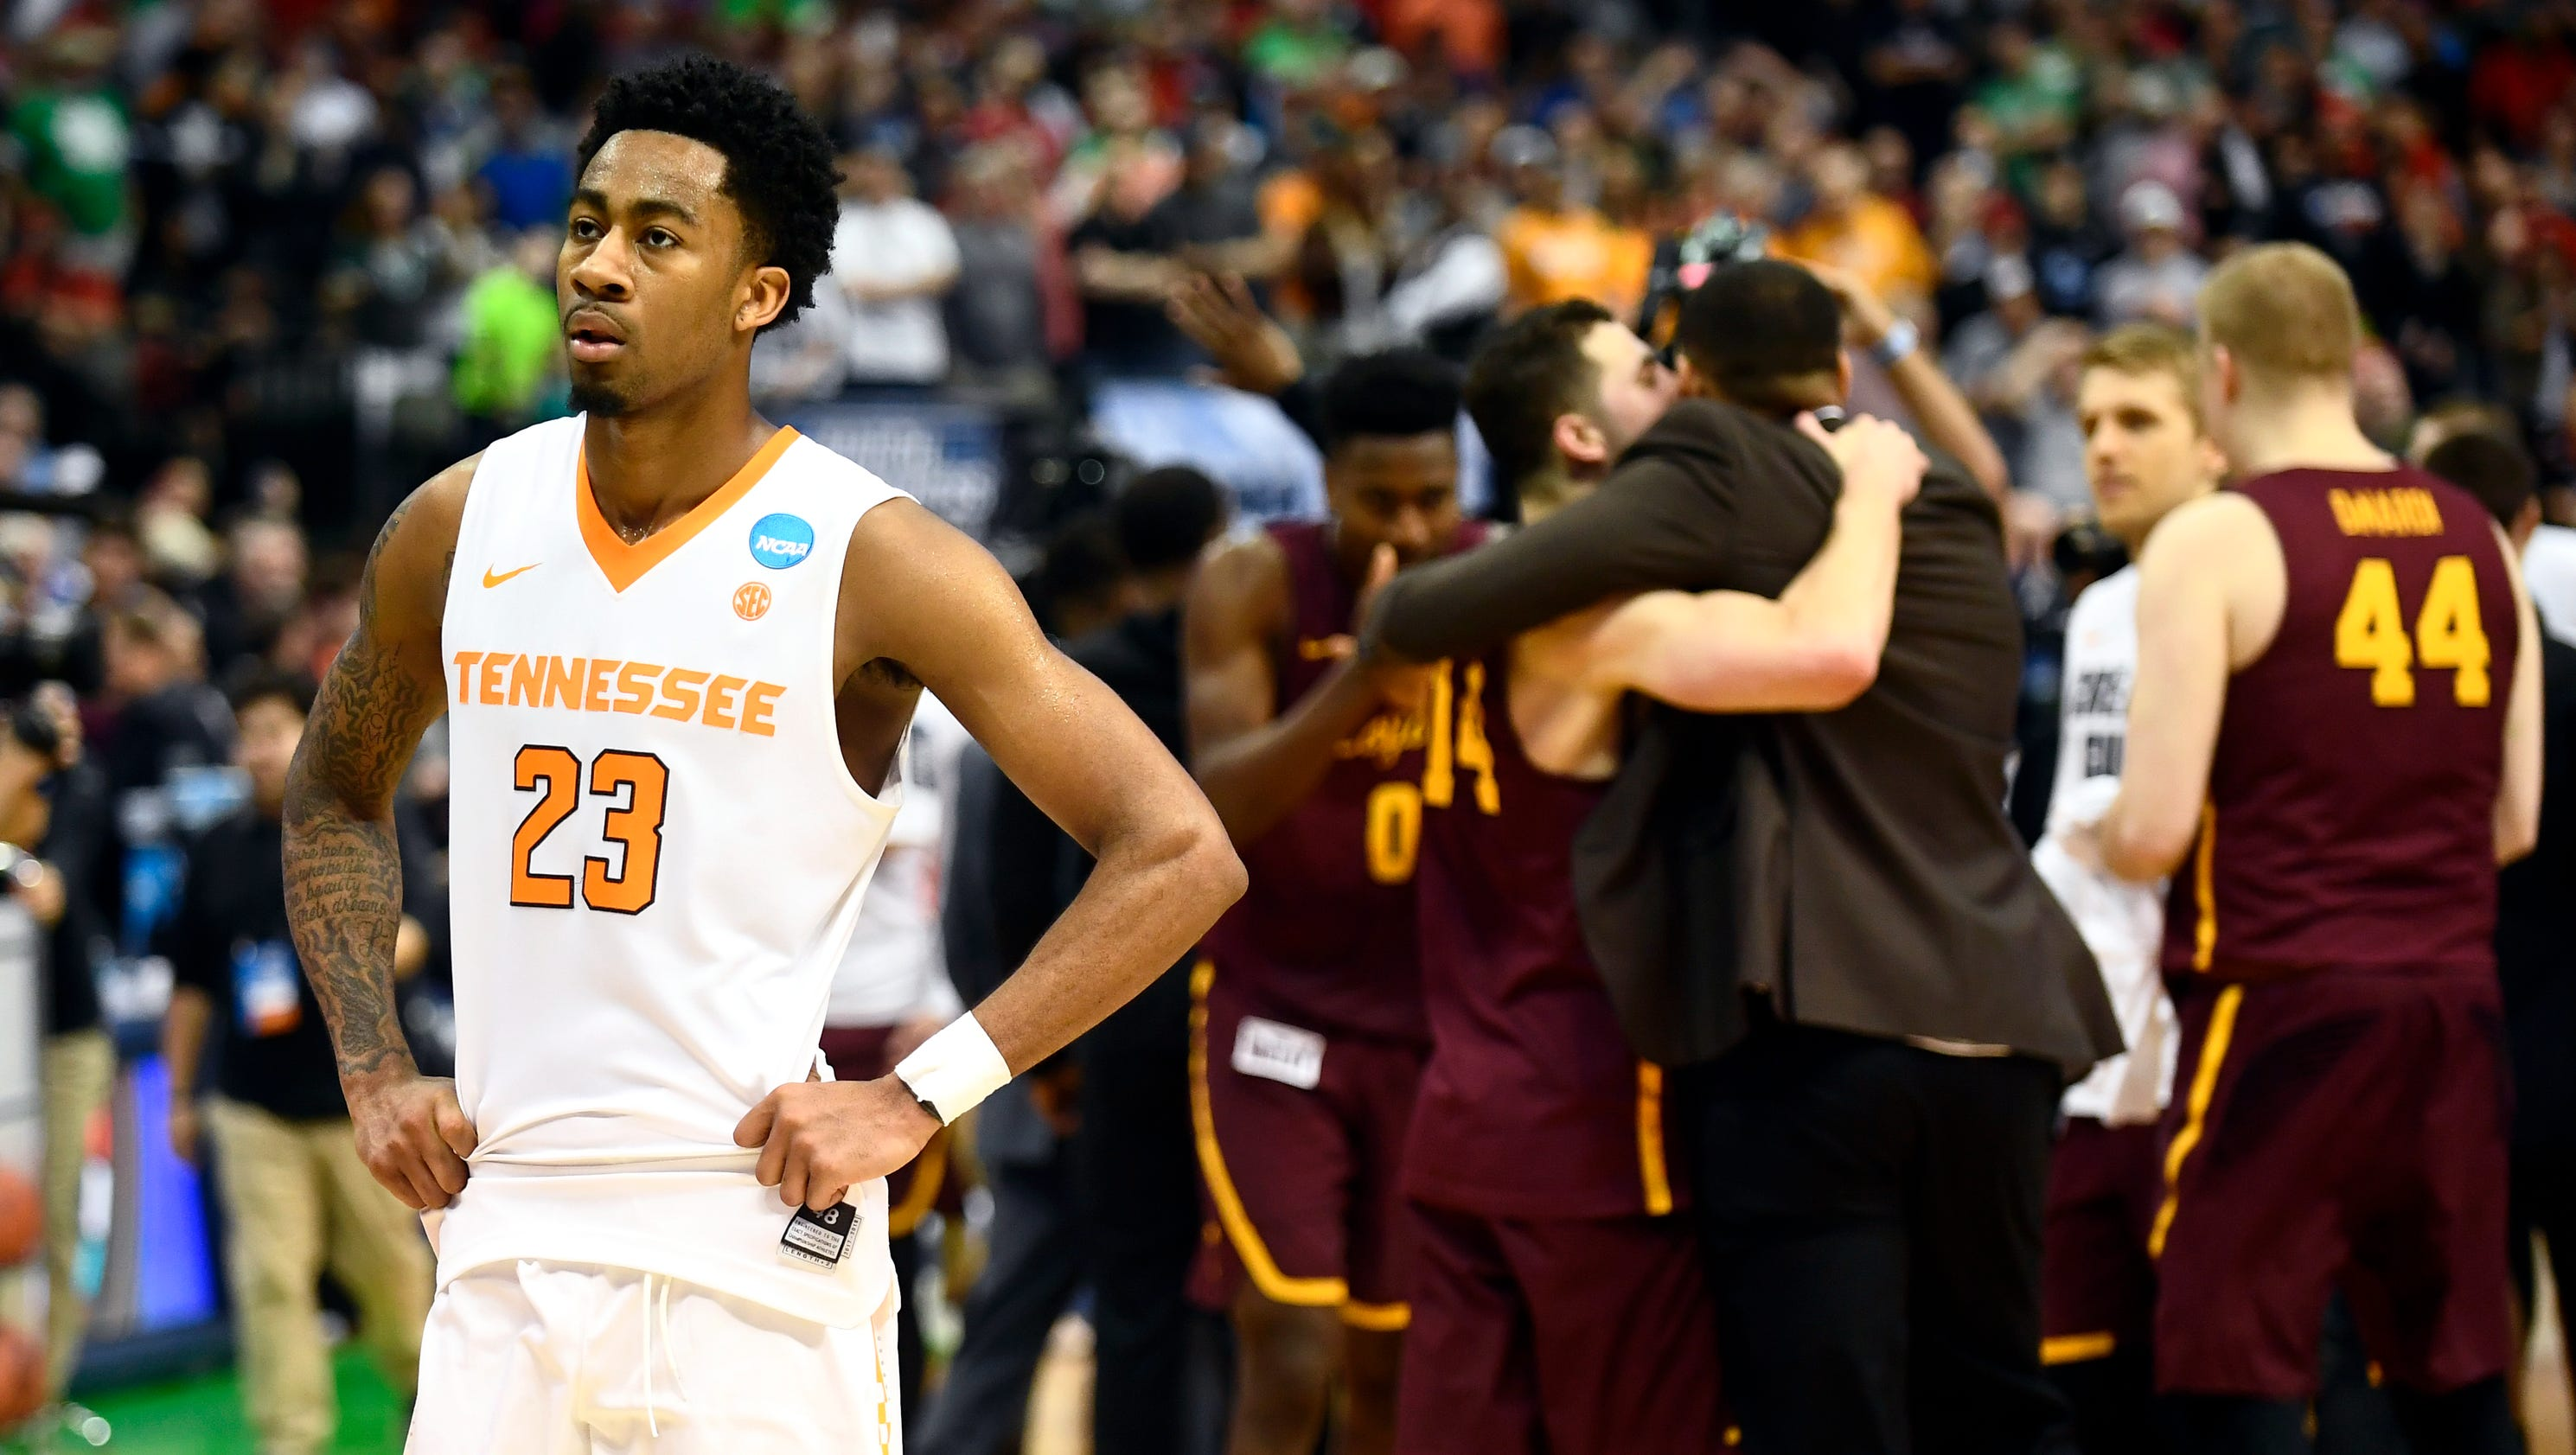 UT Vols in NCAA tournament: Tennessee upset by Loyola Chicago